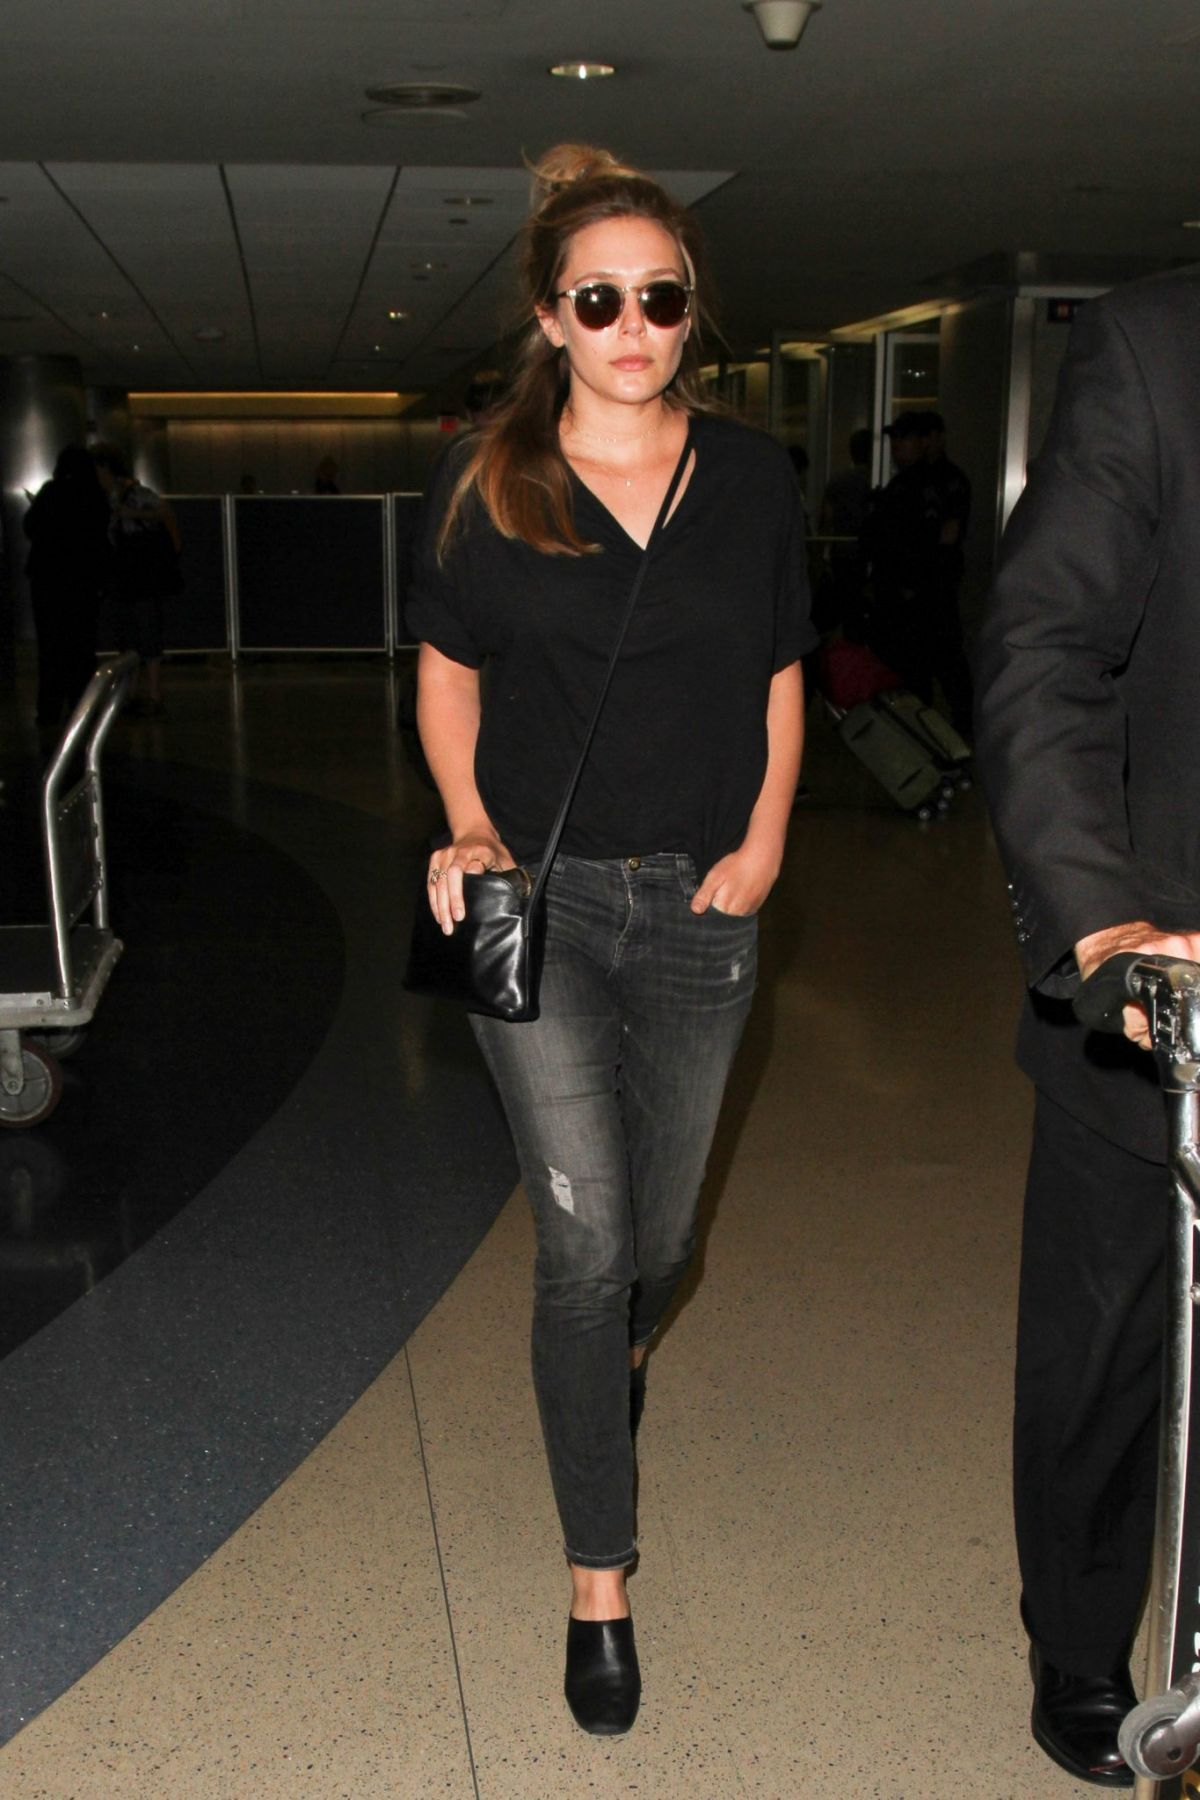 ELIZABETH OLSEN at LAX Airport in Los Angeles 06/07/2016